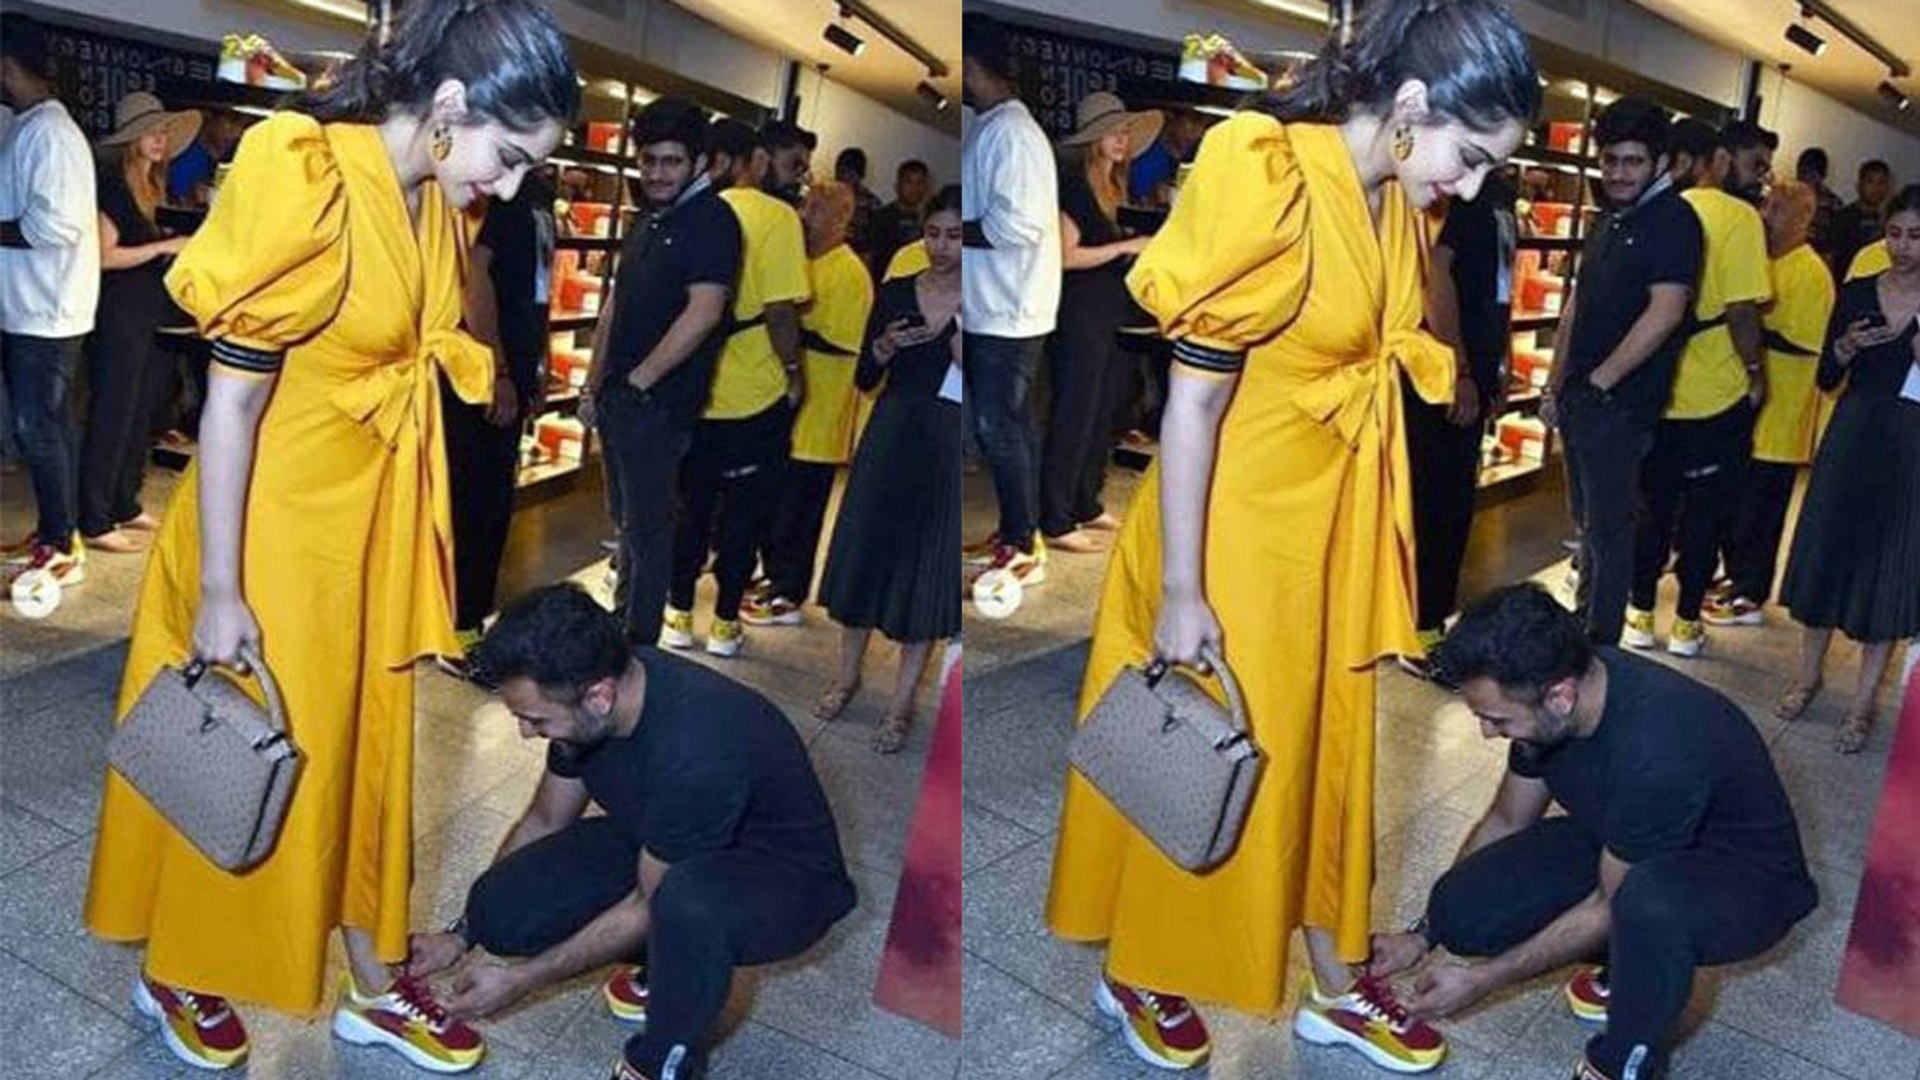 Sonam Kapoor's husband Anand Ahuja ties her shoelace in front of media; Check Out | FilmiBeat